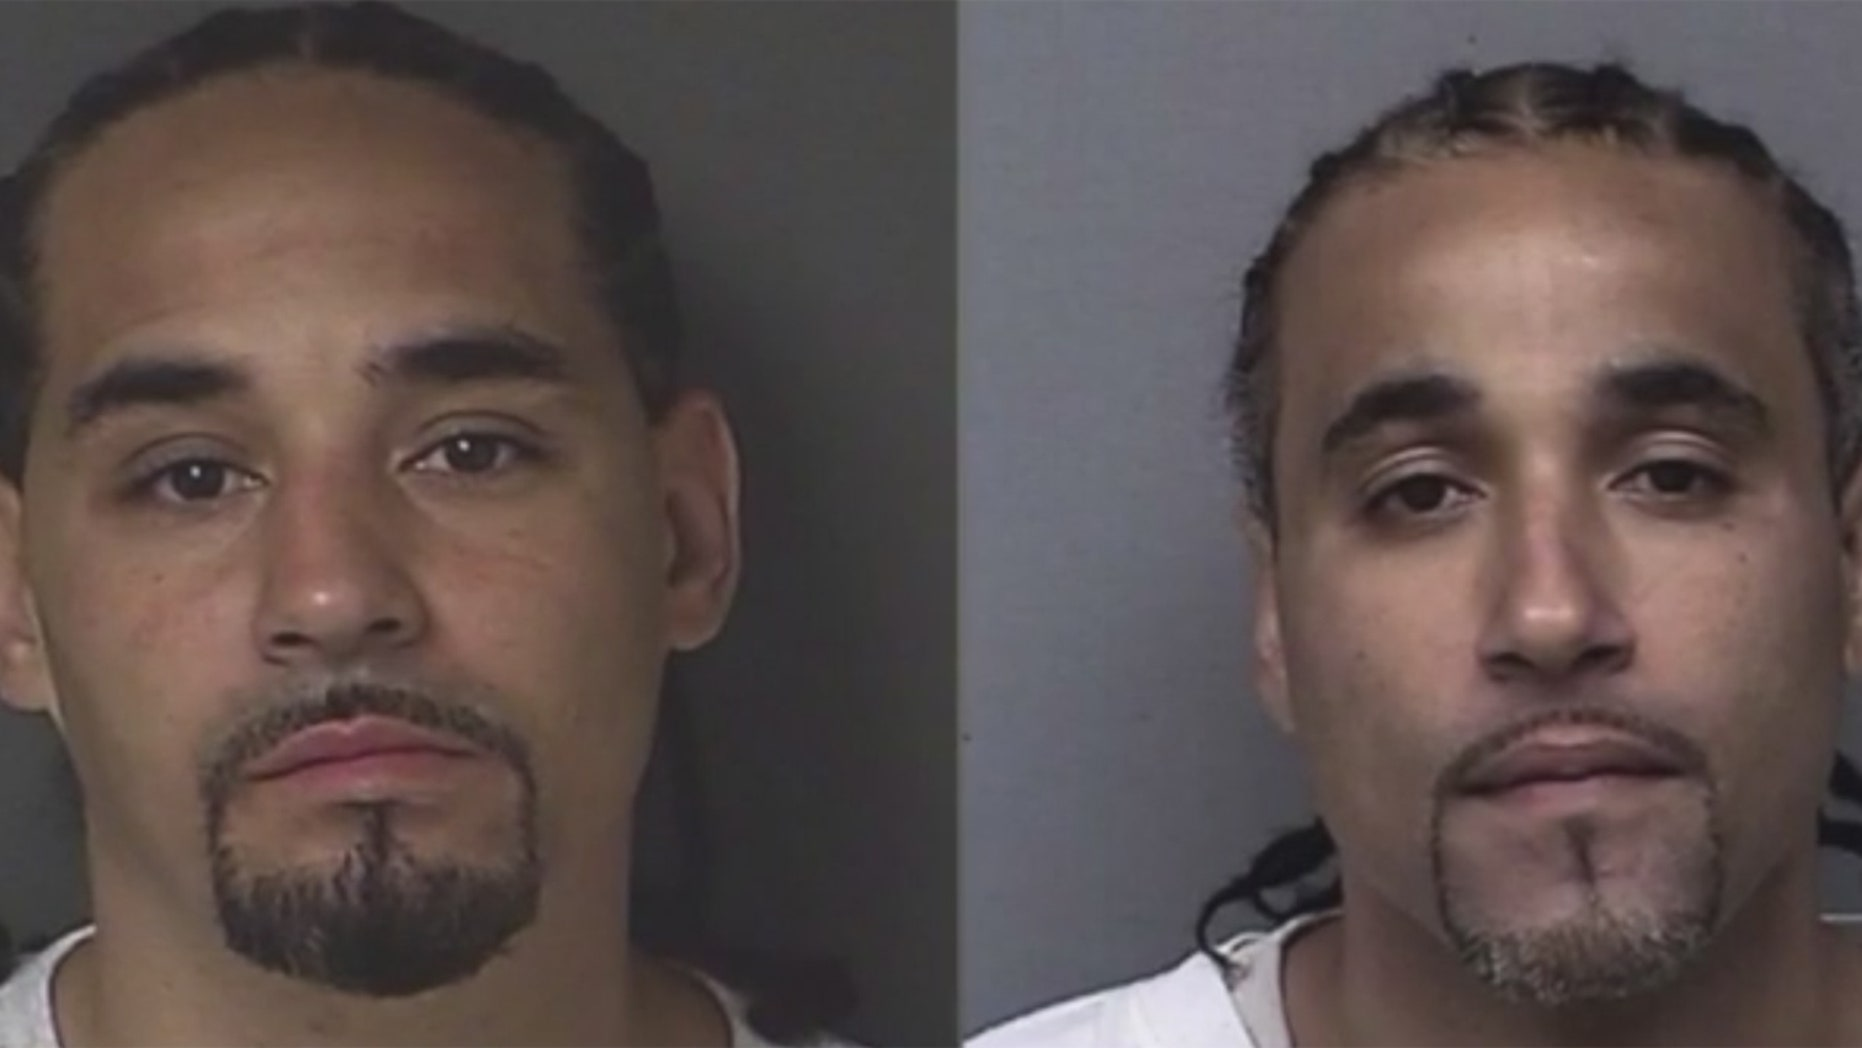 Nearly 17 years in prison for someone else's crime: A Kansas City's man freedom only came when his look-alike showed up in prison too.